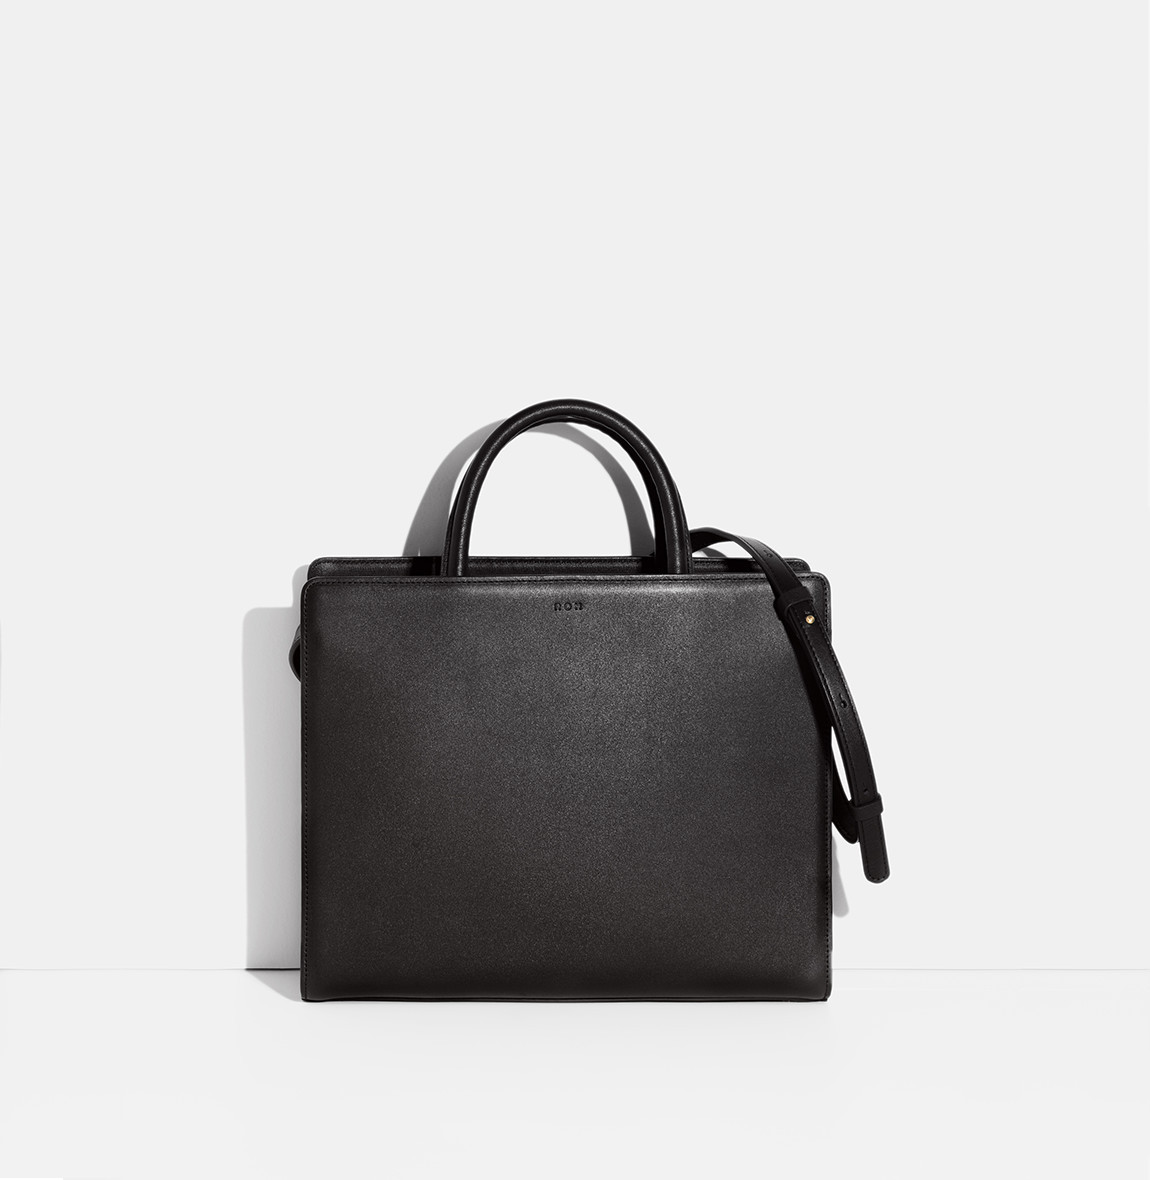 ROH Square tote bag Black